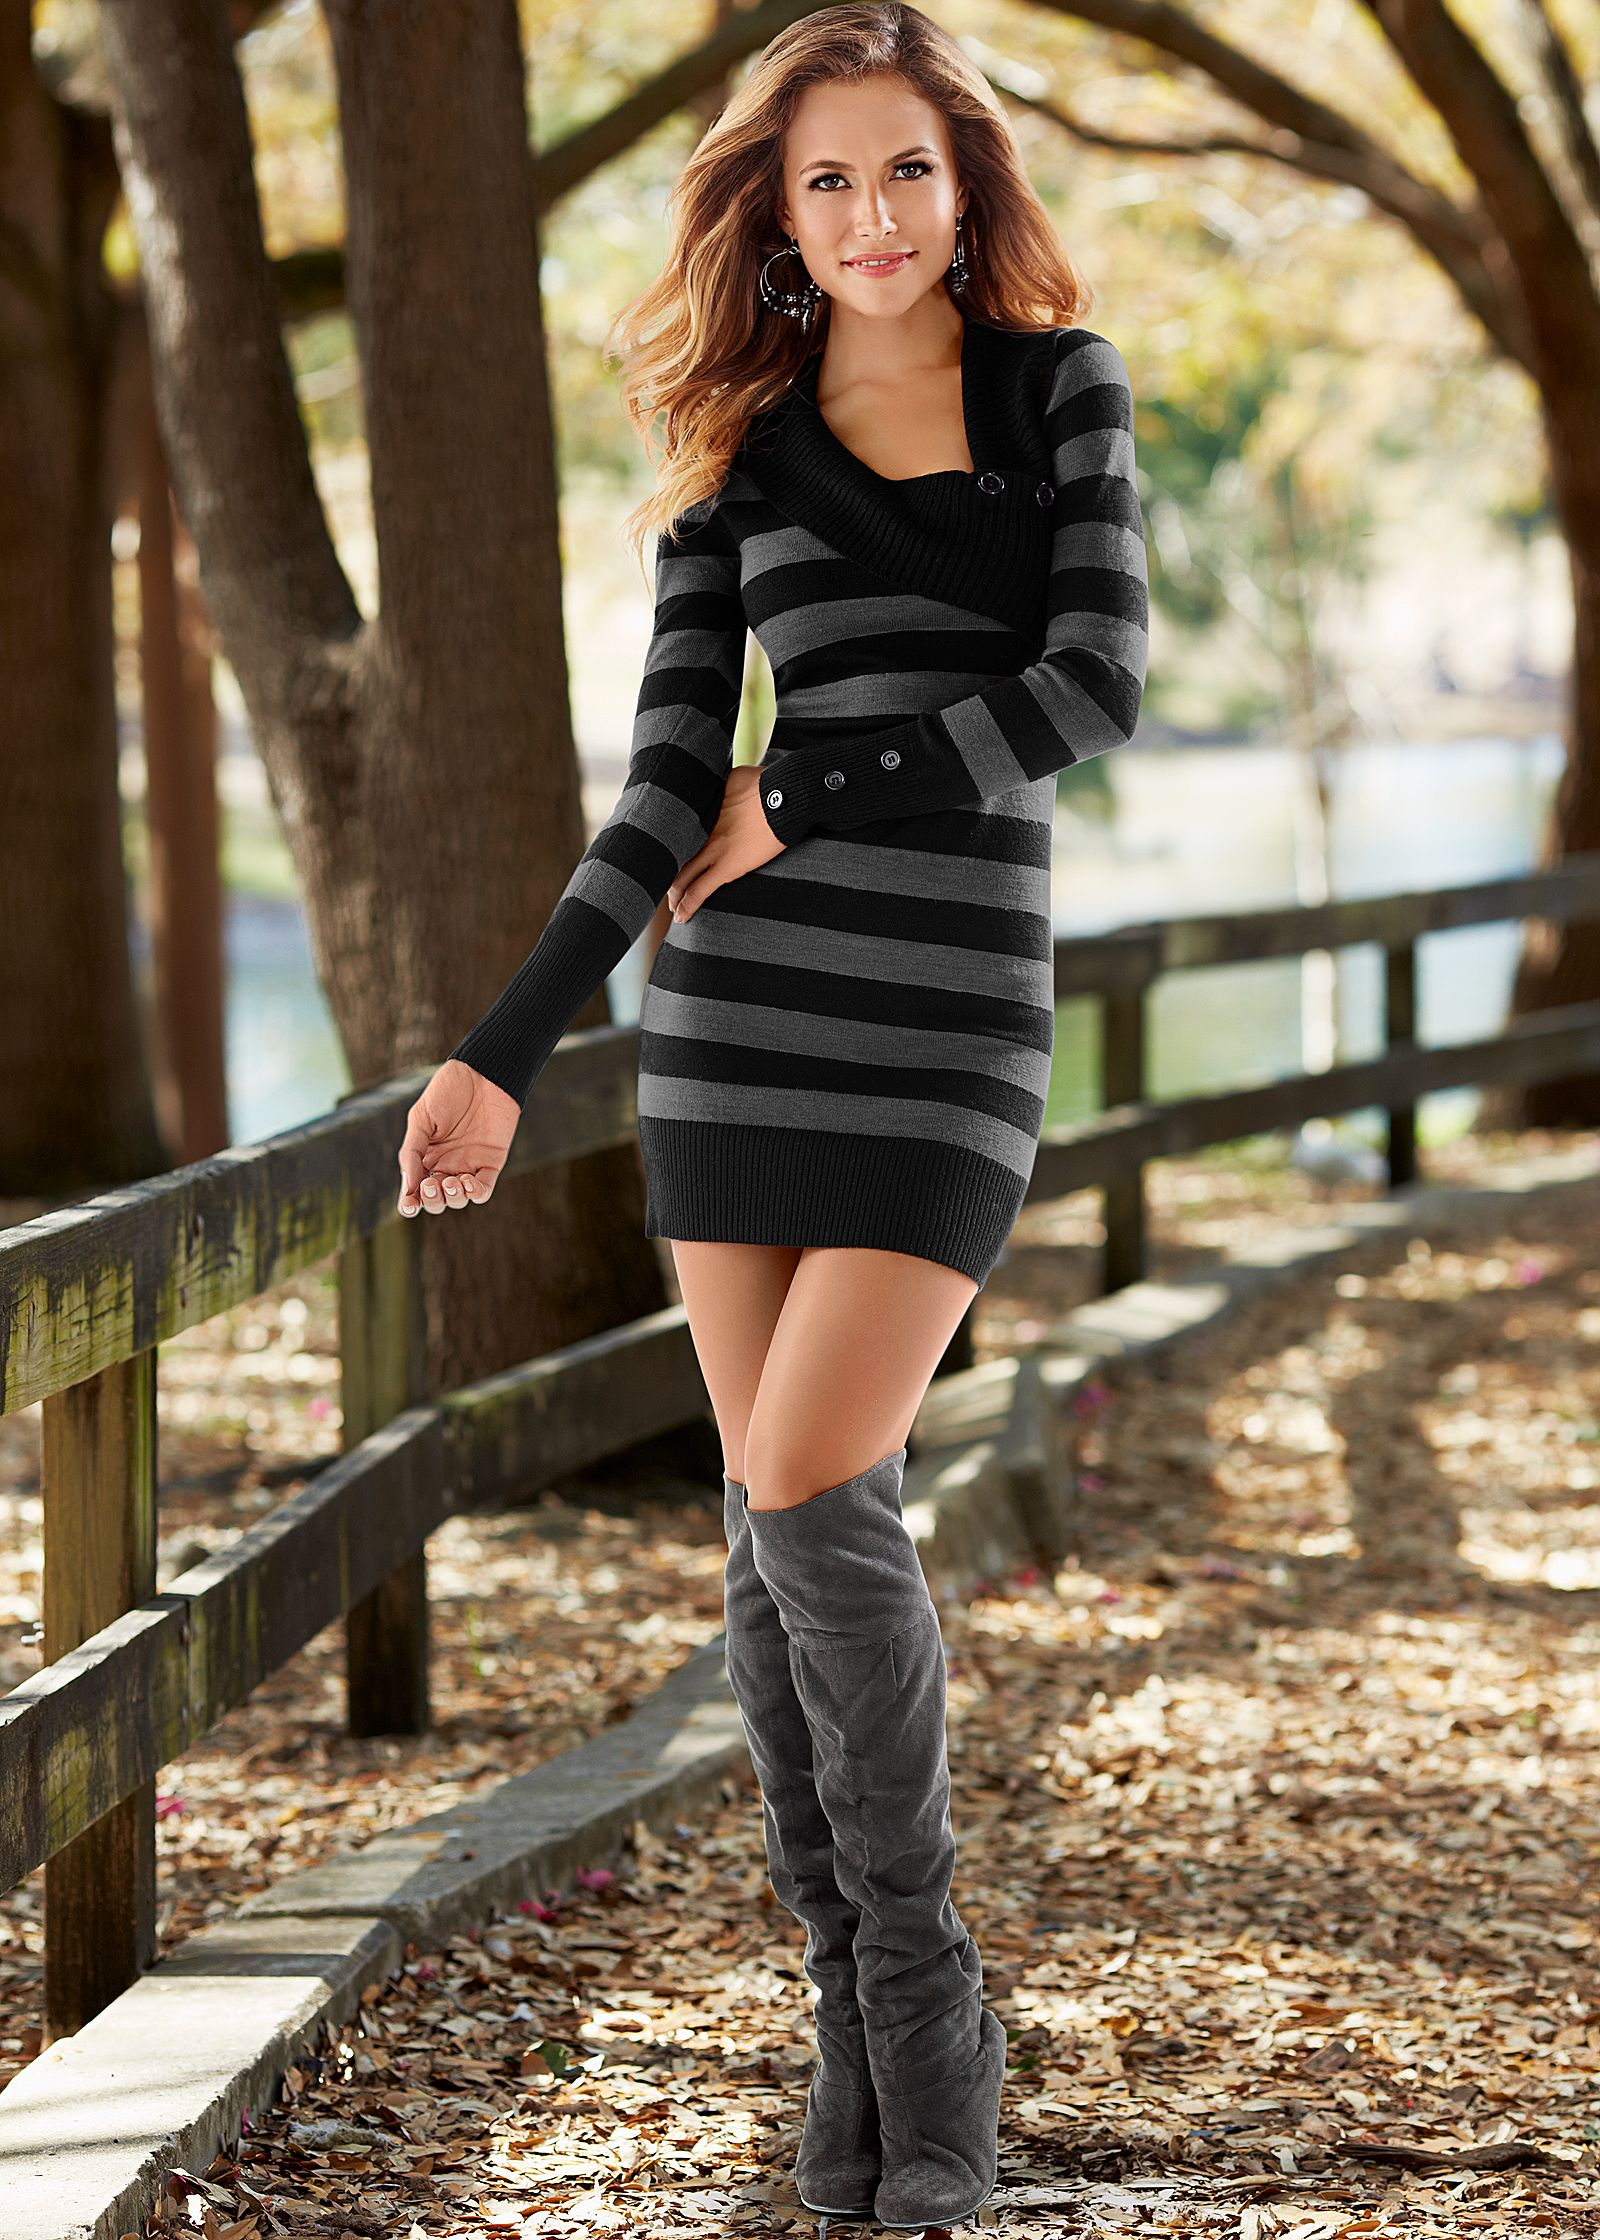 Sweater Dress and Boots Fashion Pictures